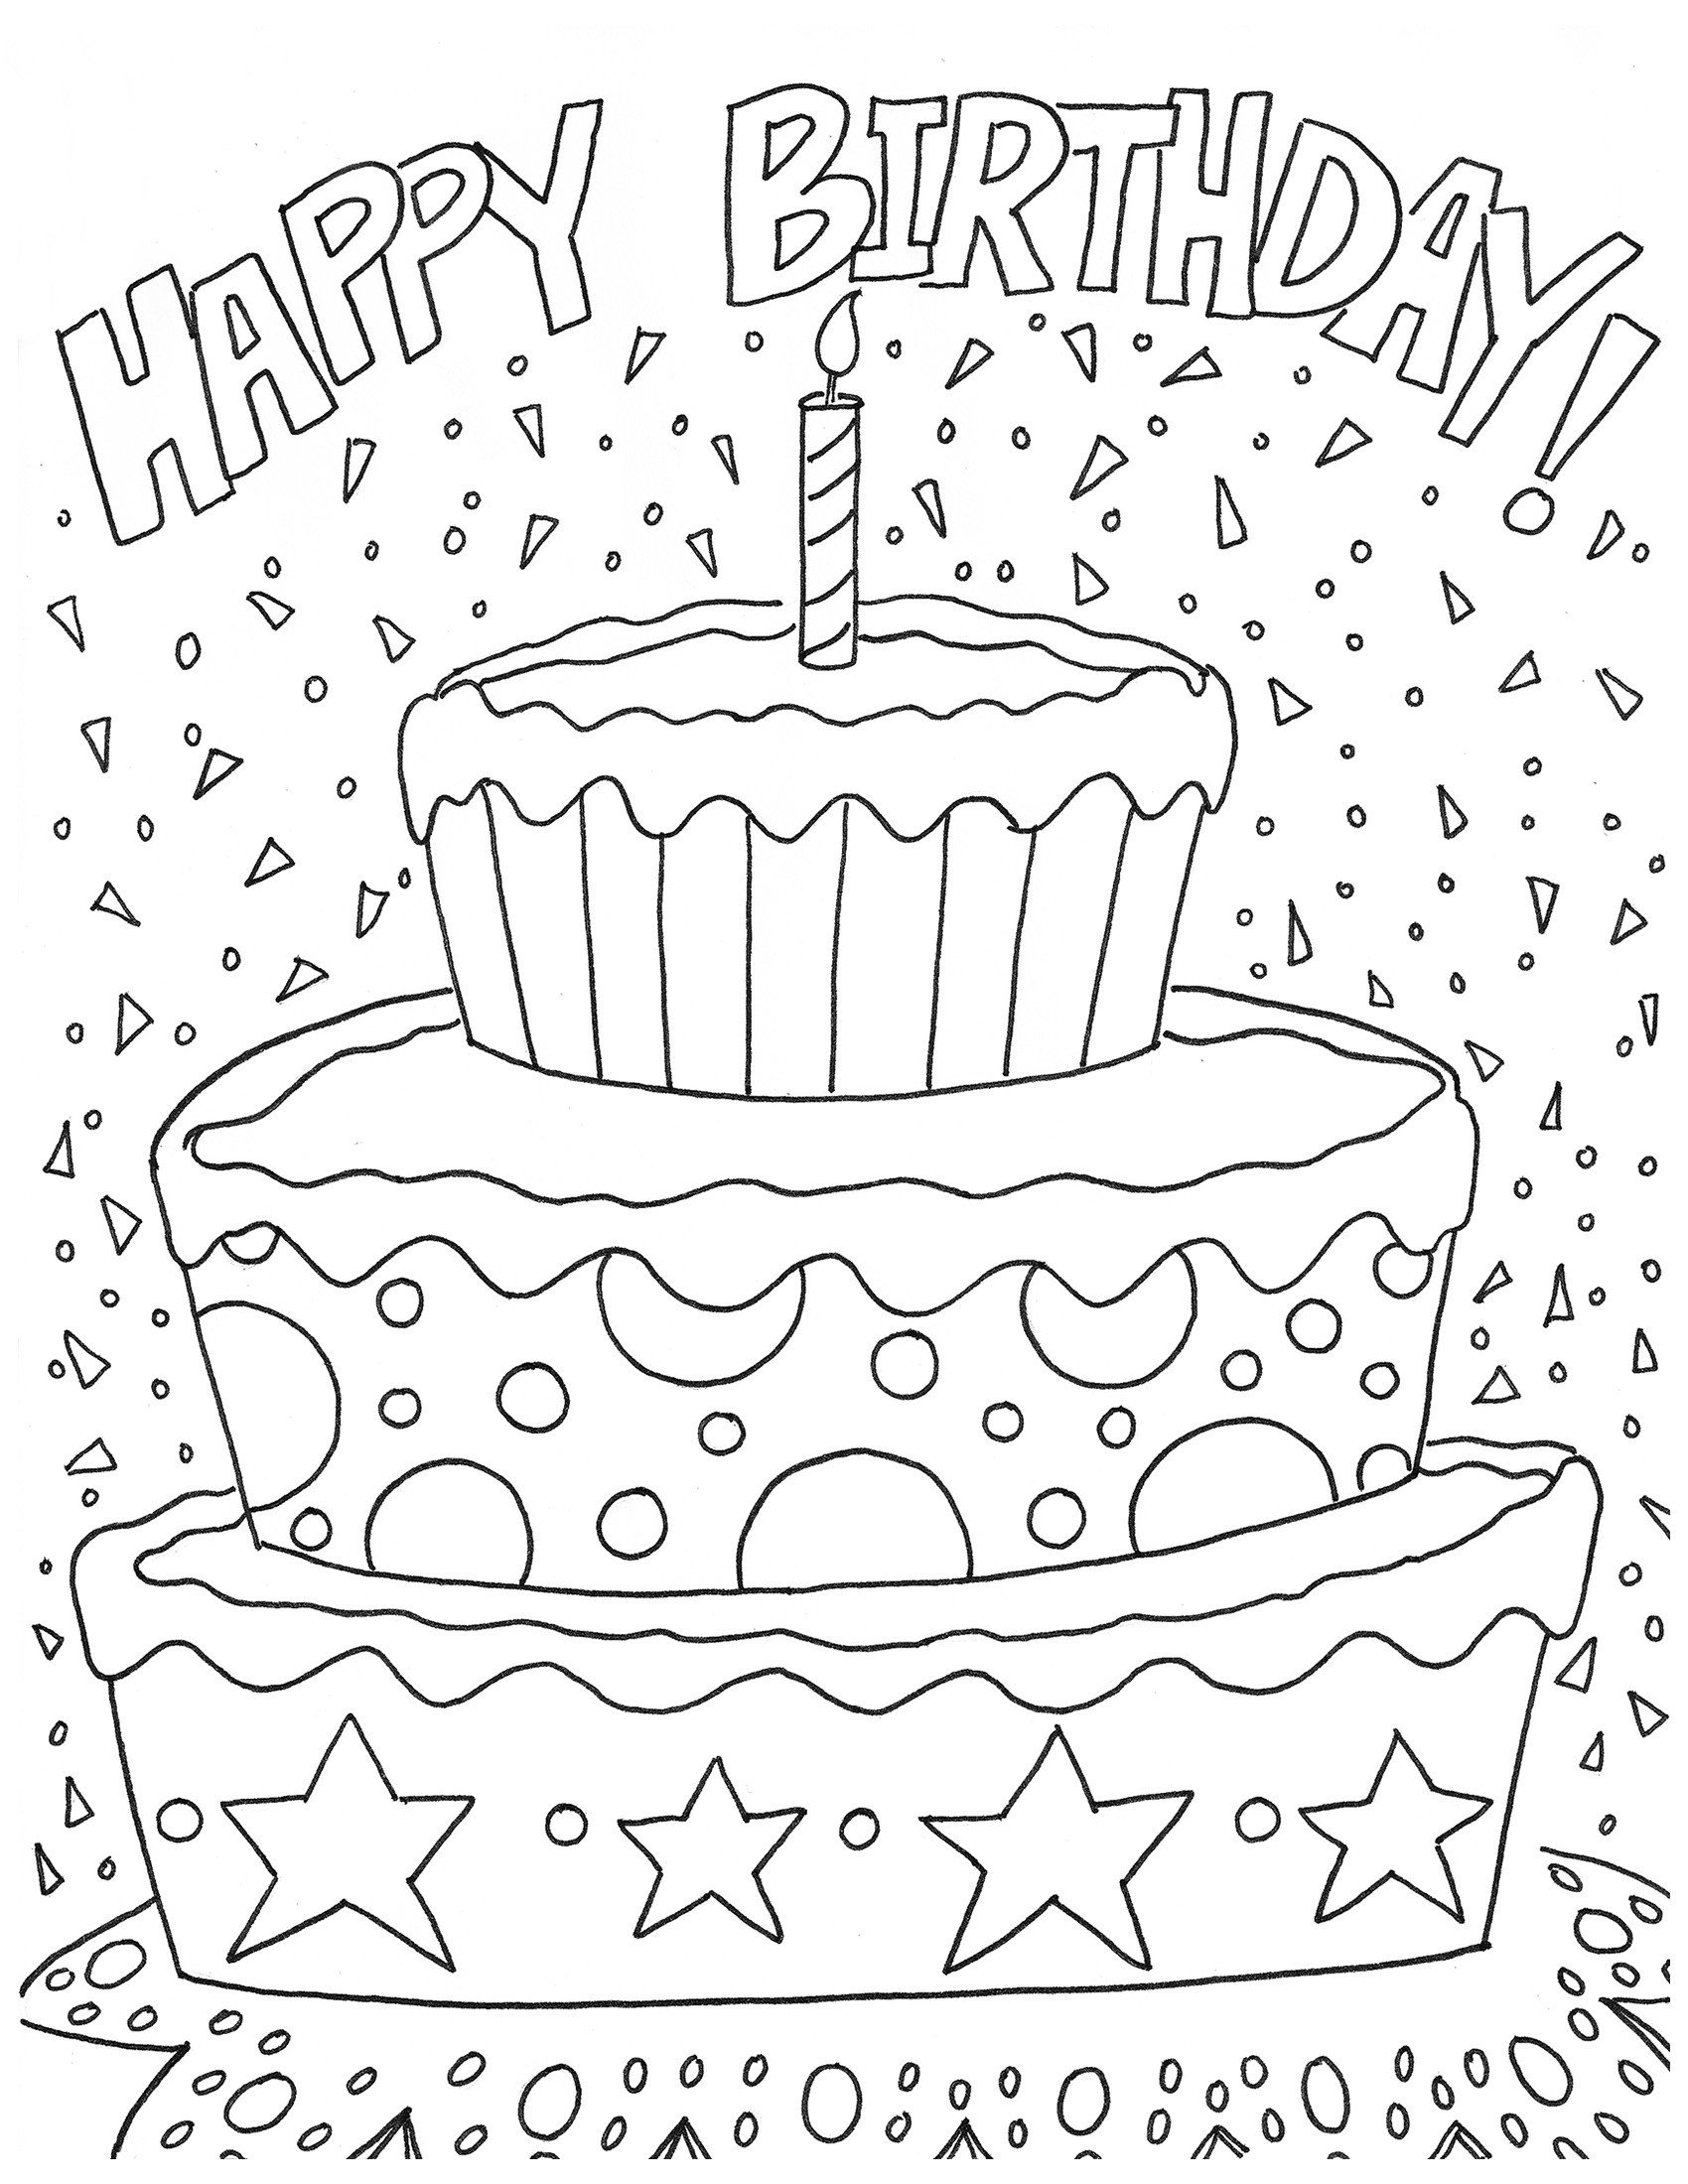 Happy Birthday Coloring Pages Artzycreations A Website On How to Do It Yourself